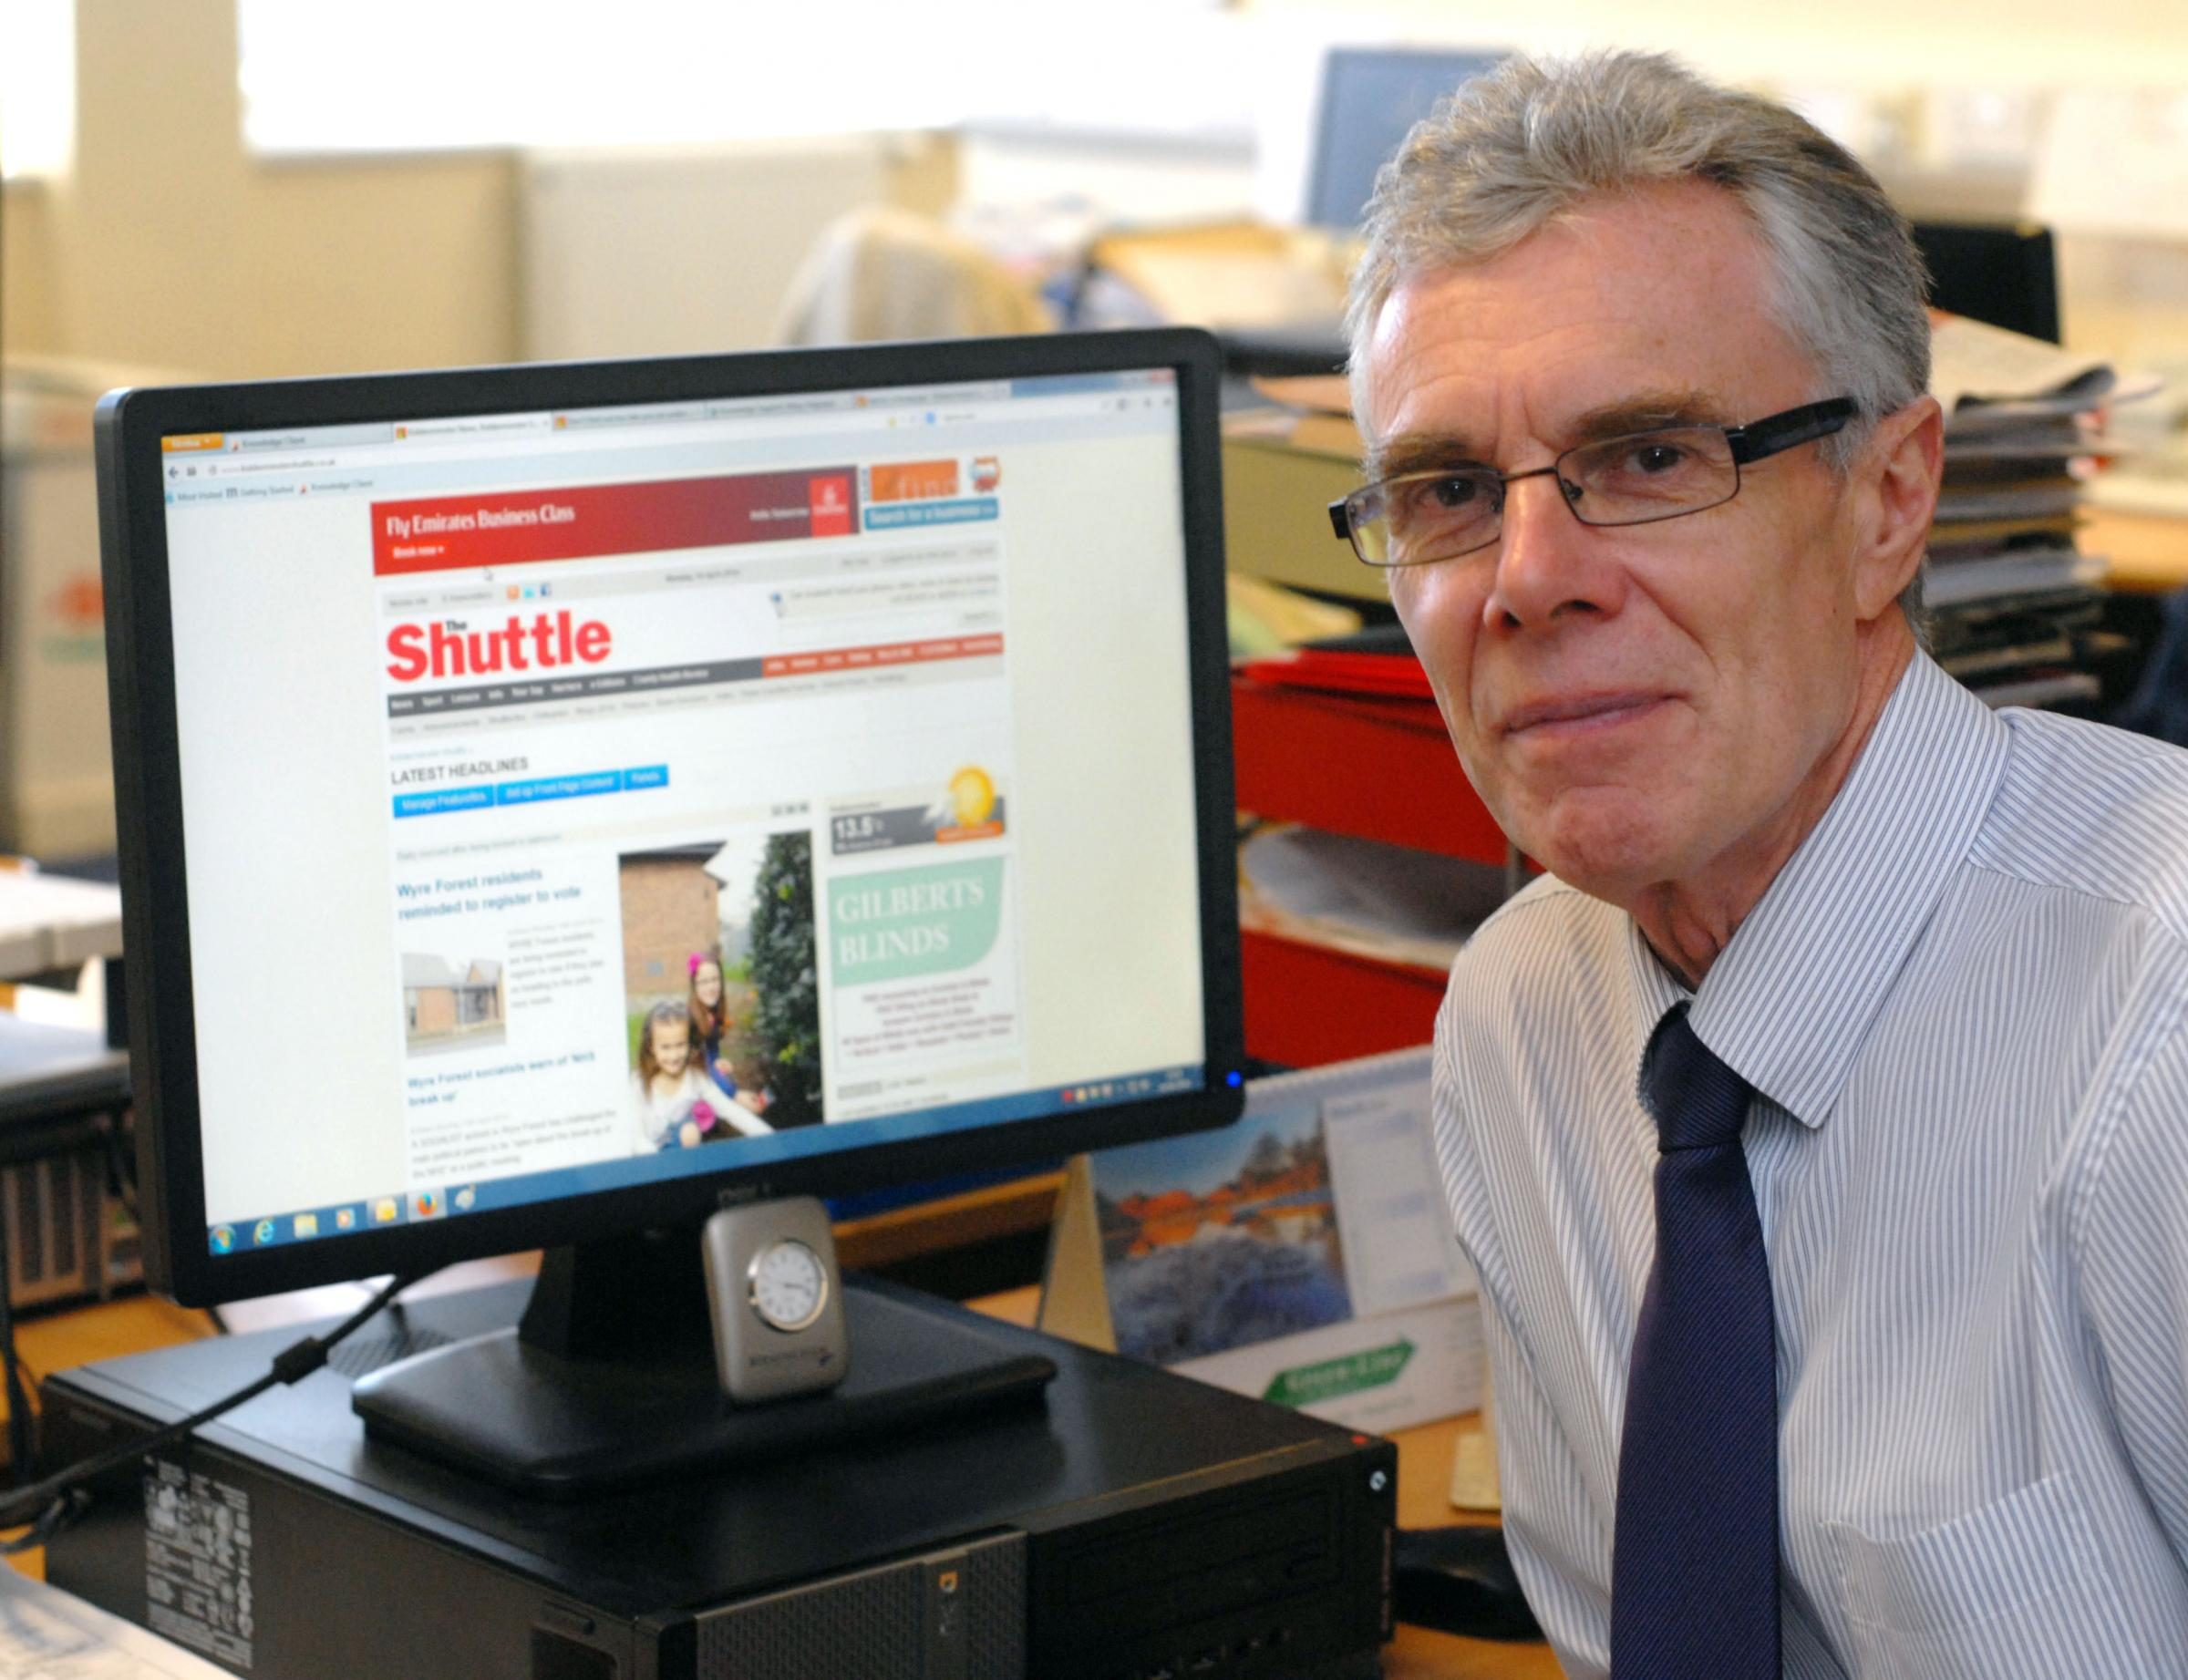 Retiring: Clive Joyce, who is leaving The Shuttle after 21 years, says an editor's role is a privileged one in the community.